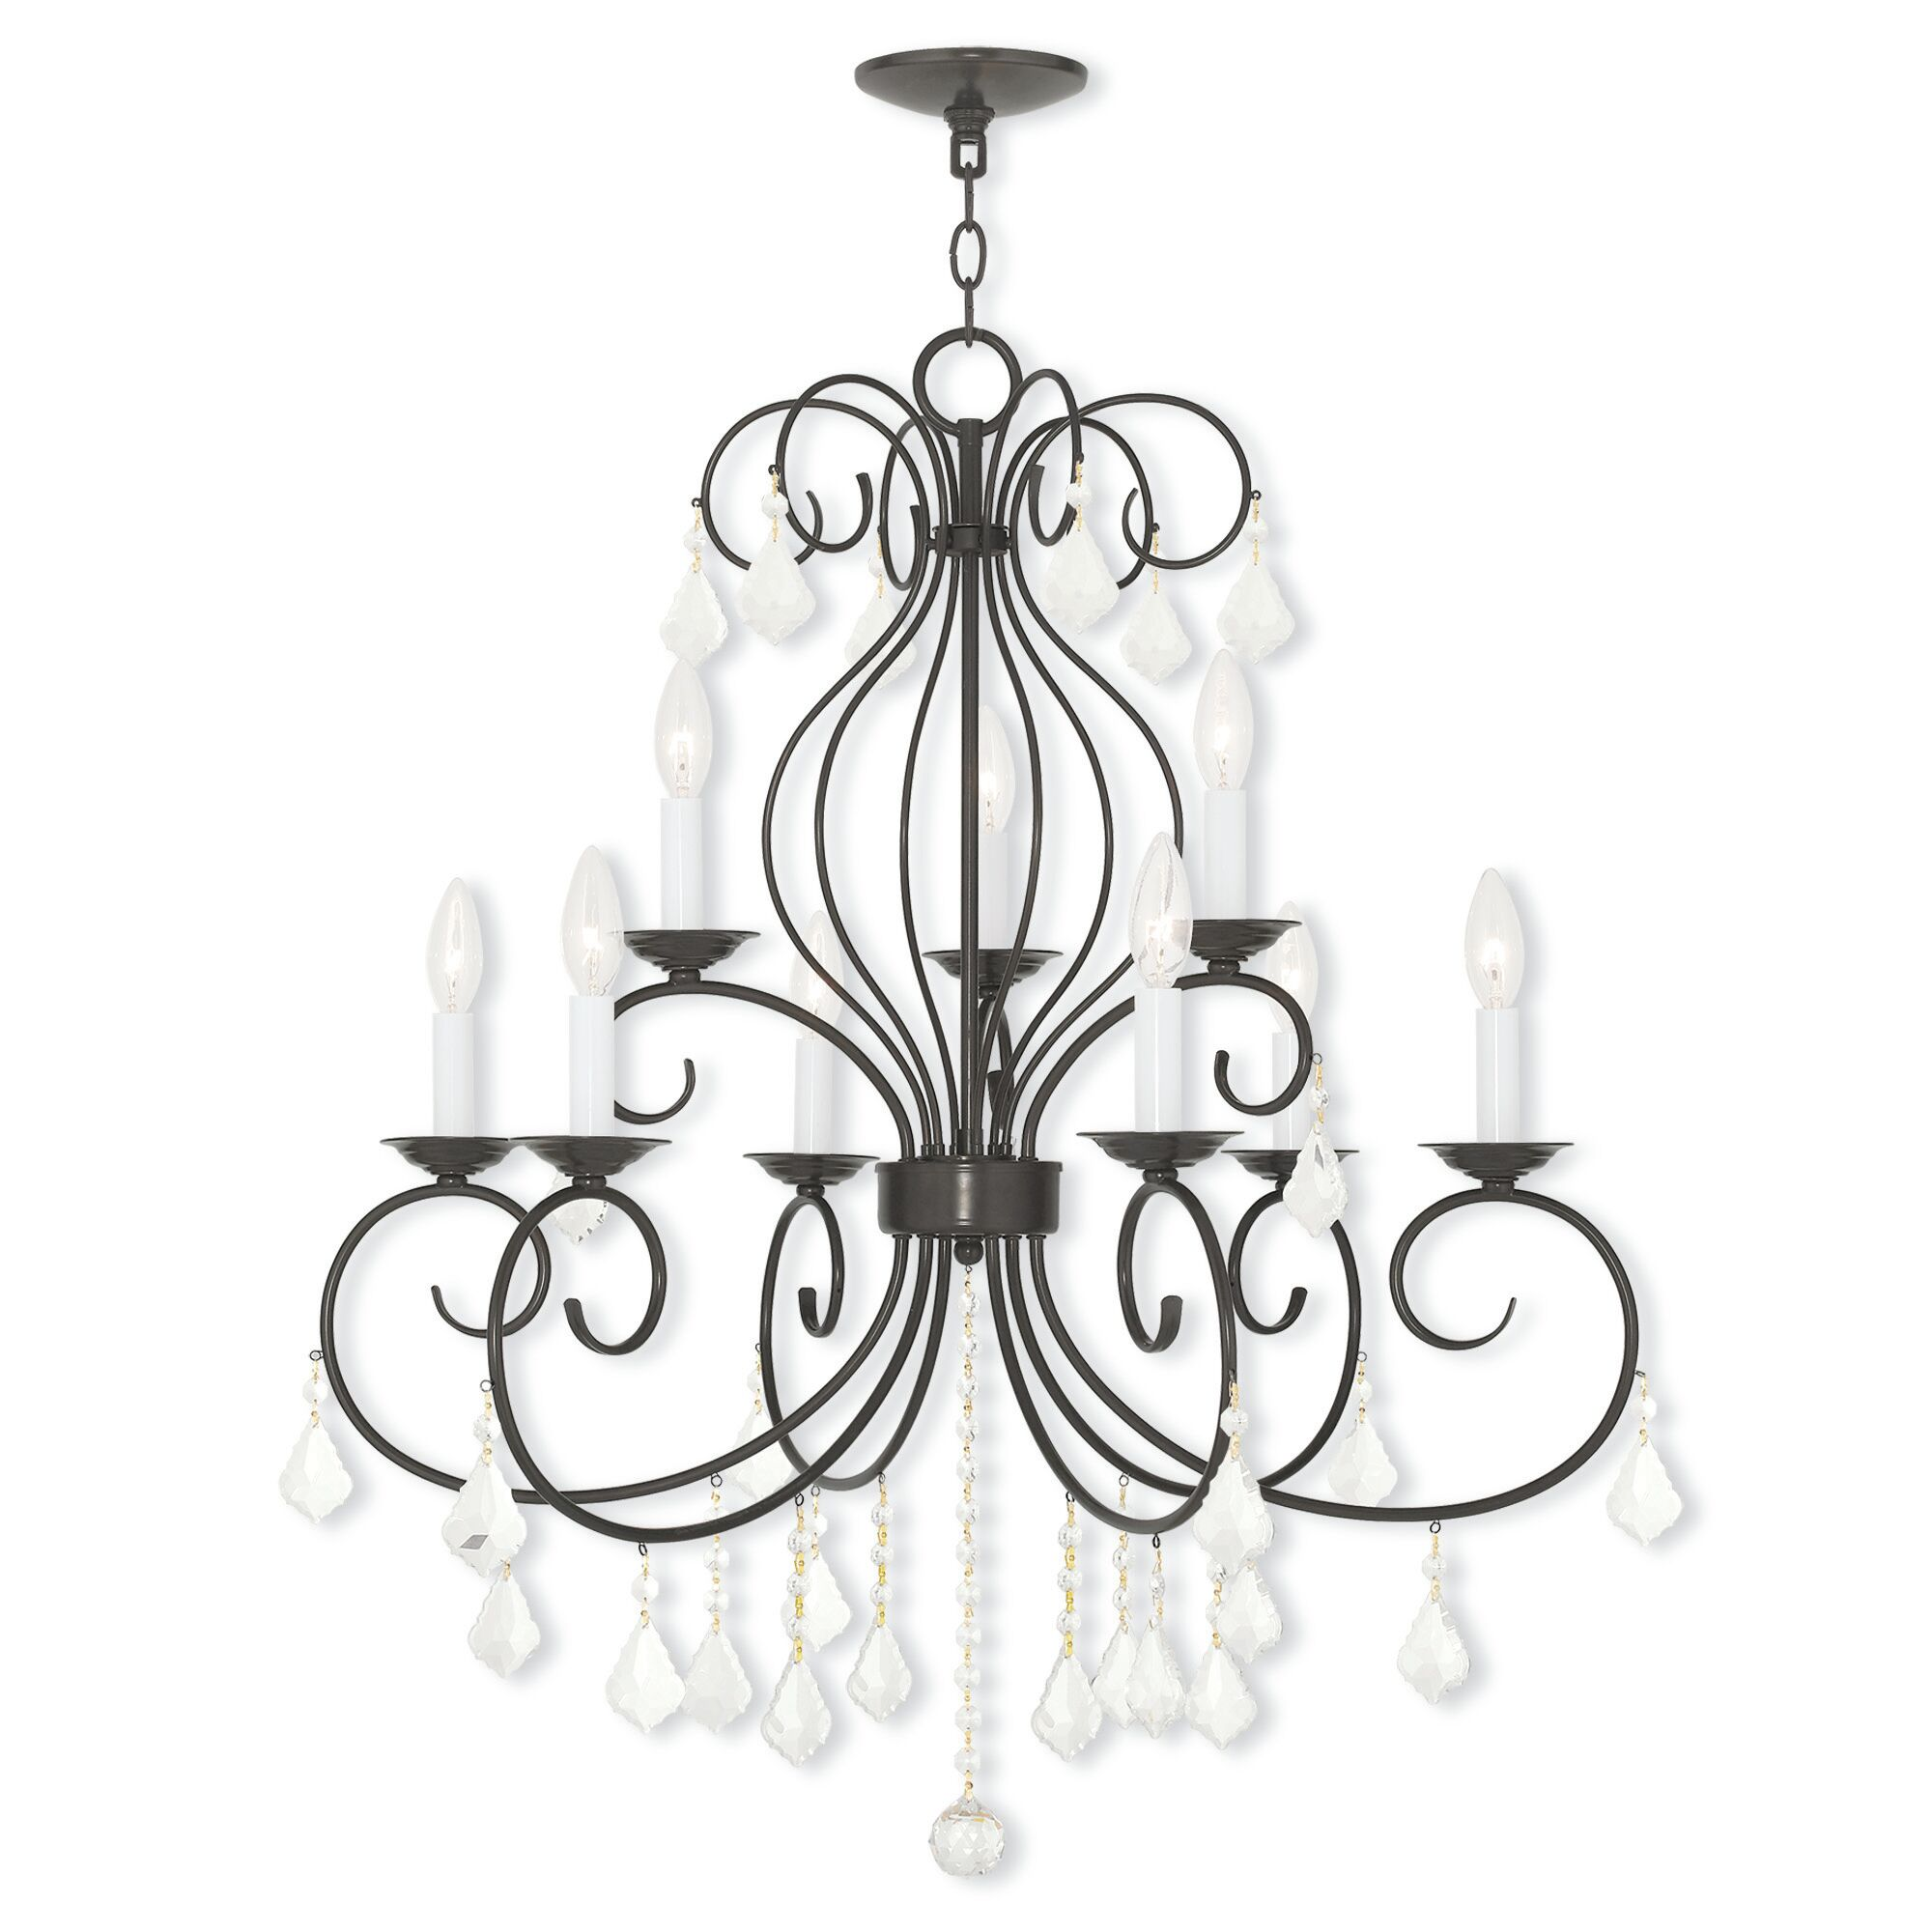 Dockray 9-Light Candle Style Chandelier Color: English Bronze